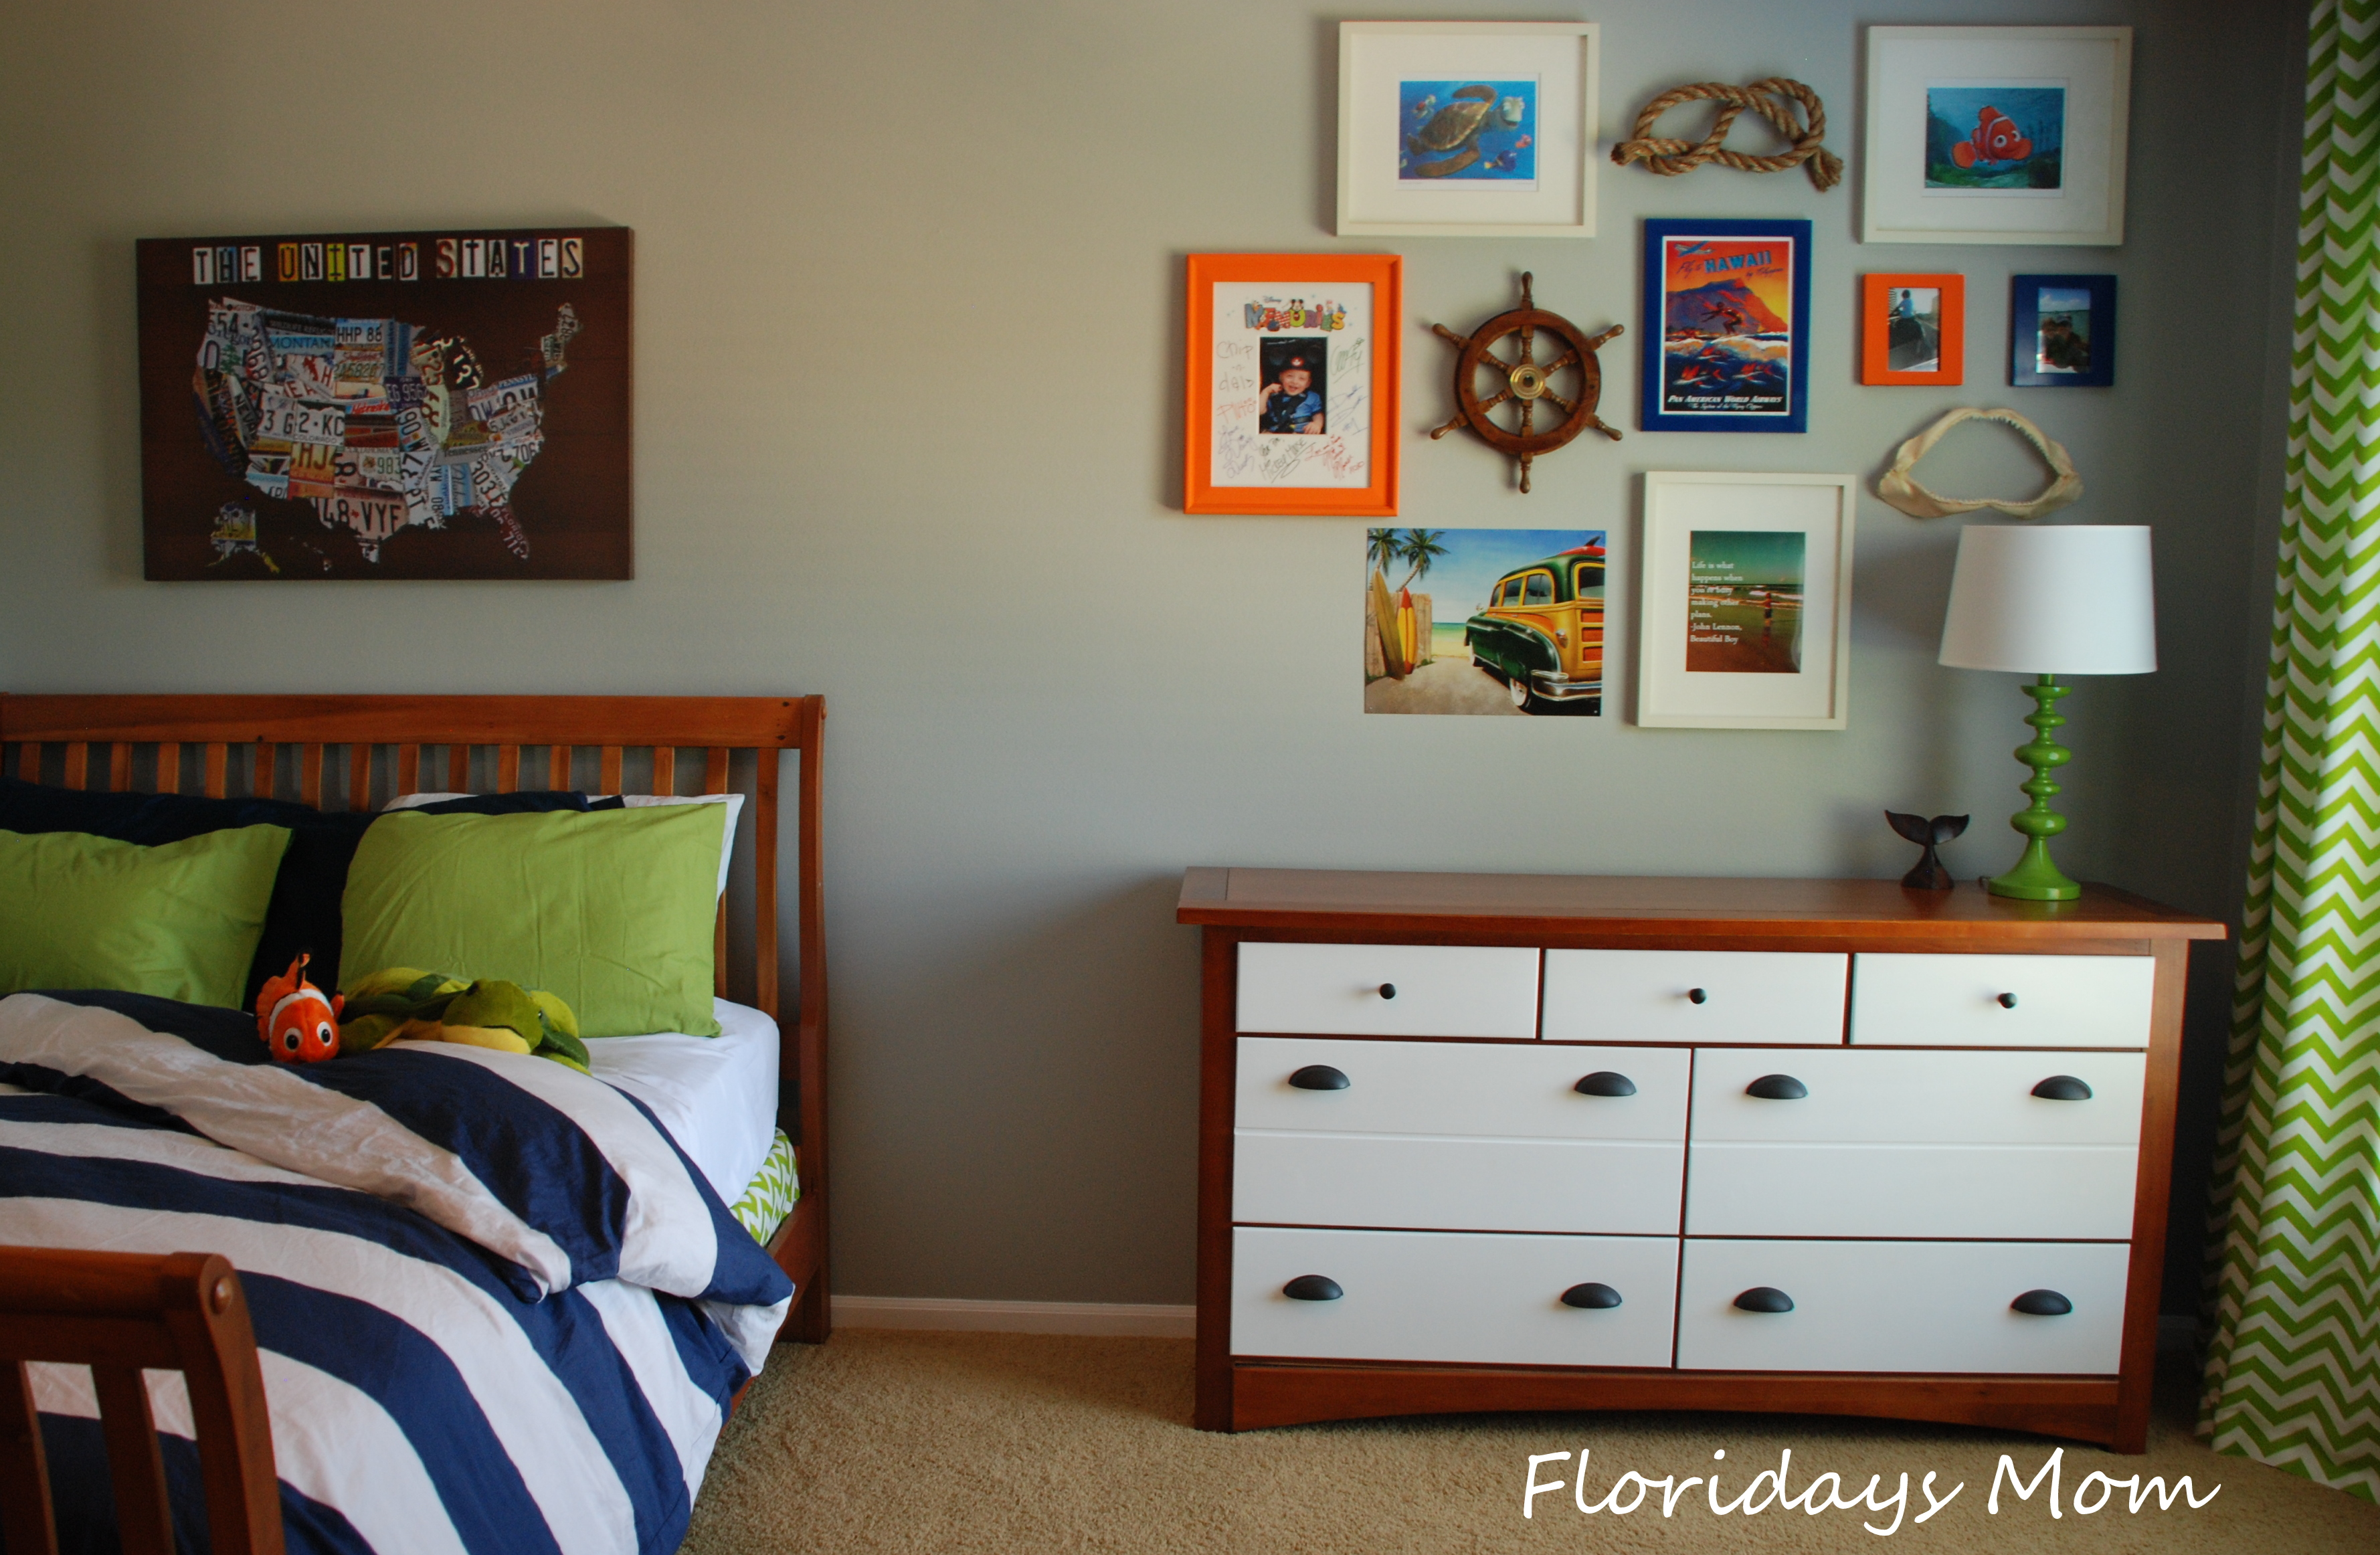 http://www.designdazzle.com/wp-content/uploads/2013/06/Nautical-Boy-Room-Gallery-Wall.jpg